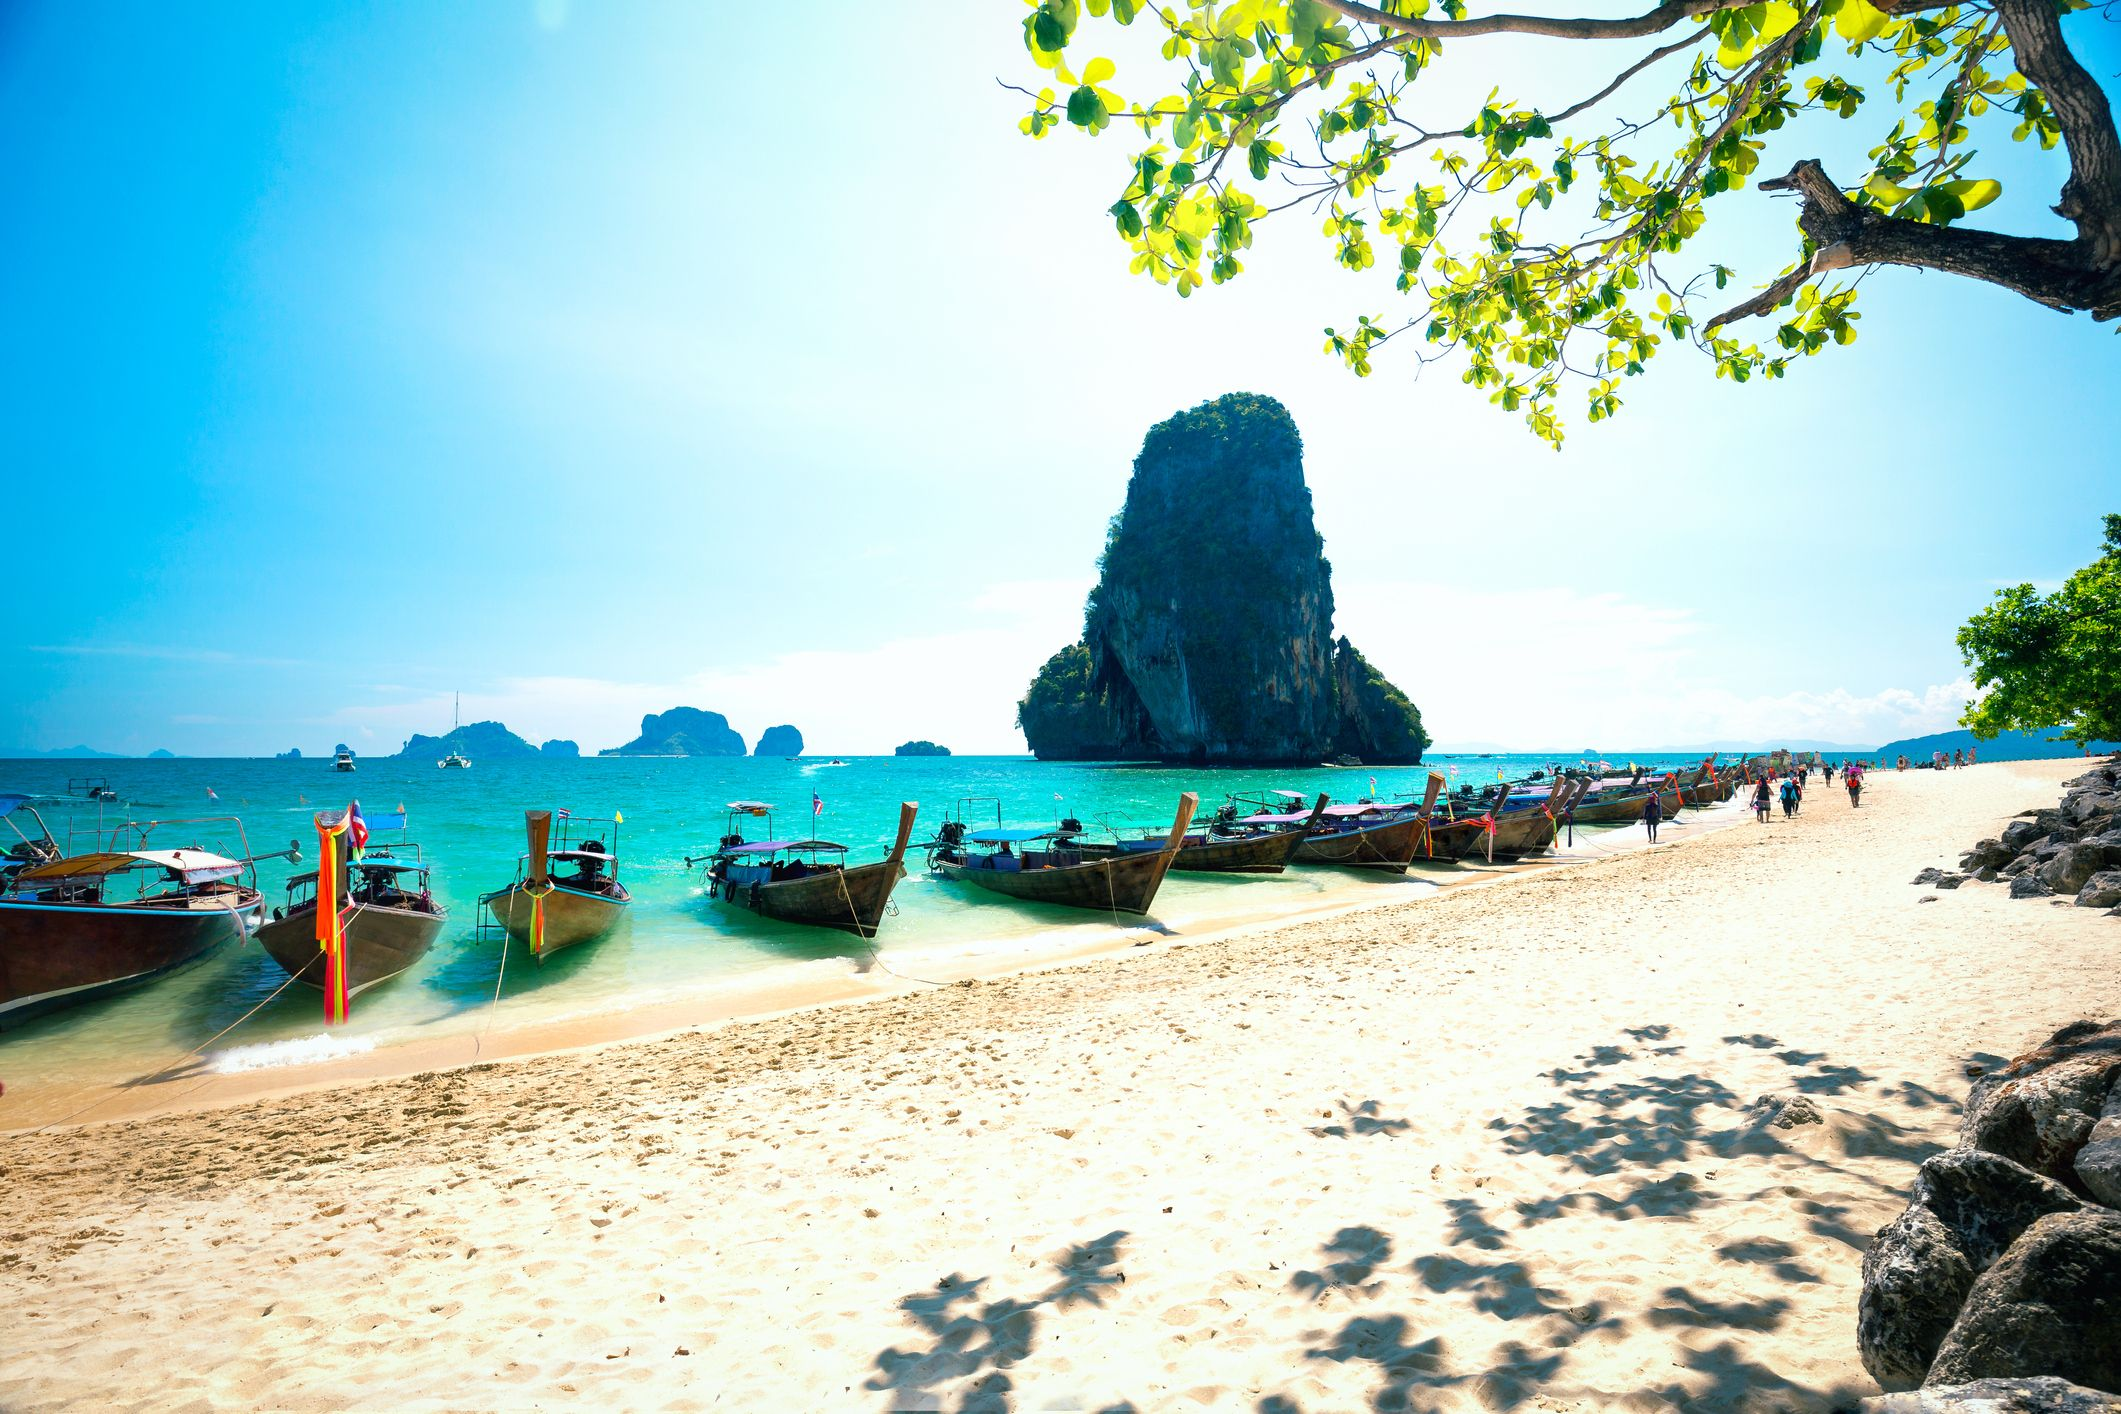 40 Best Beaches In The World Most Beautiful Beaches To Visit